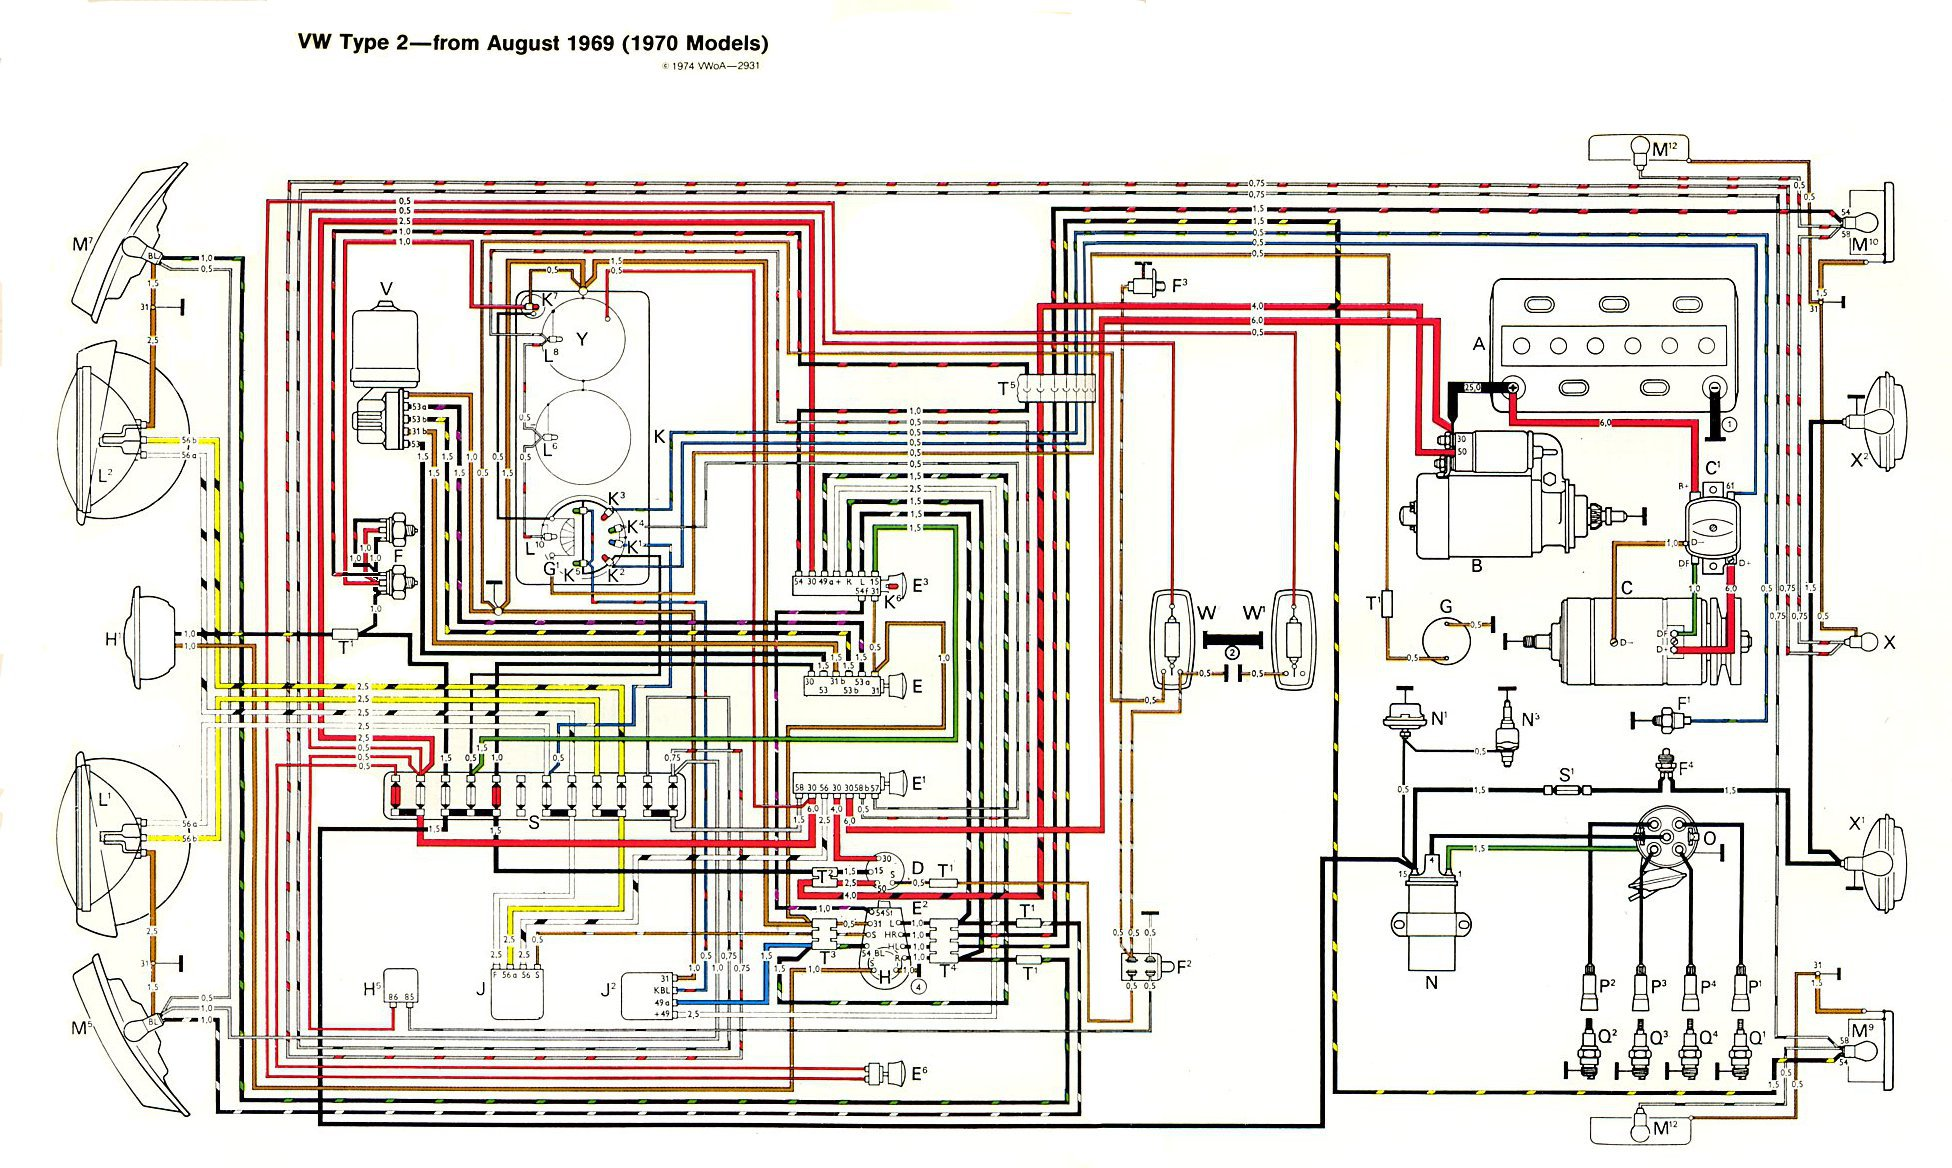 1971 vw wiring diagram colored wiring info u2022 rh cardsbox co 1971 vw bus wiring diagram pdf 1971 vw bus wiring diagram pdf